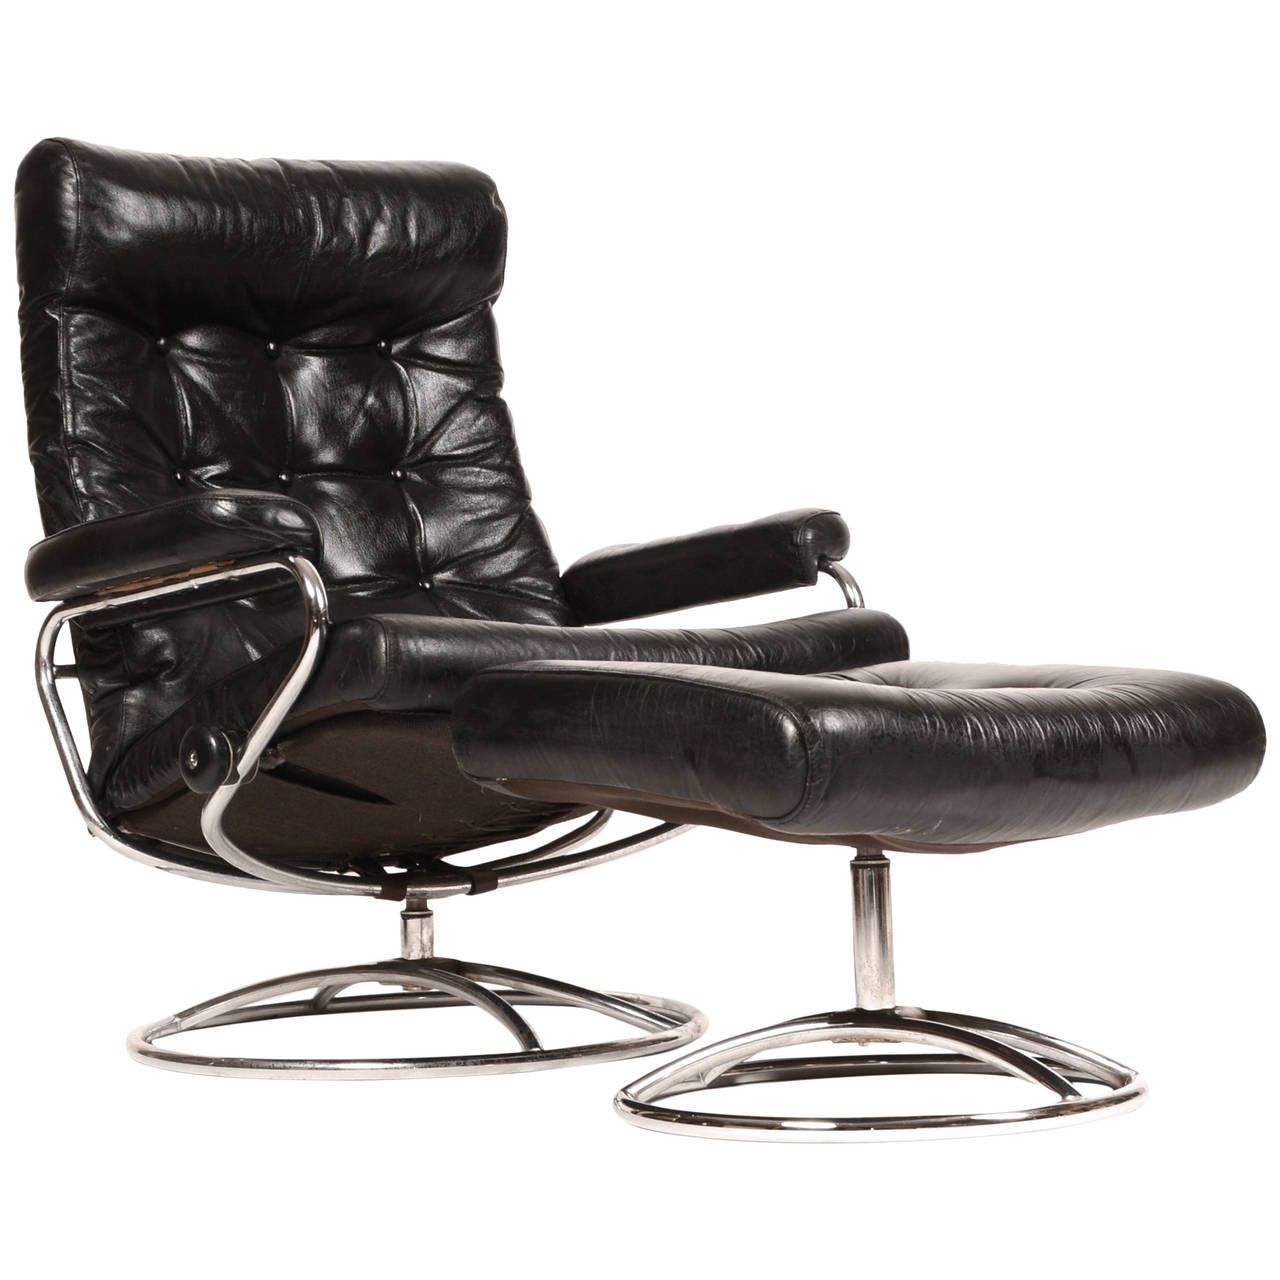 Stressless Chair Similar Target Blue Slipper Reclining Lounge And Ottoman By Ekornes